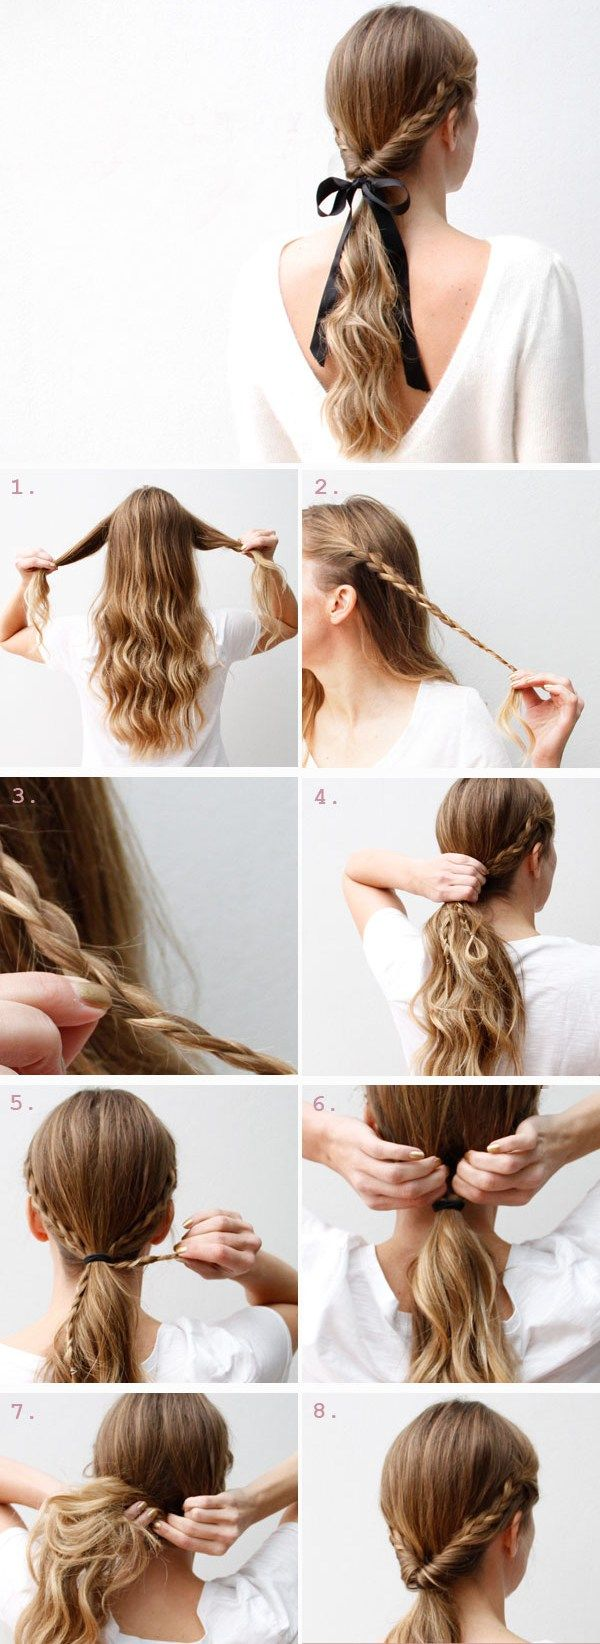 Hairstyles Step By Step easy and simple hairstyles cute hairstyles simple hairdos easy hairstyles beautiful hairstyles Top 25 Best Step By Step Hairstyles Ideas On Pinterest Simple Hair Updos Easy Hairstyle And Simple Hairstyles